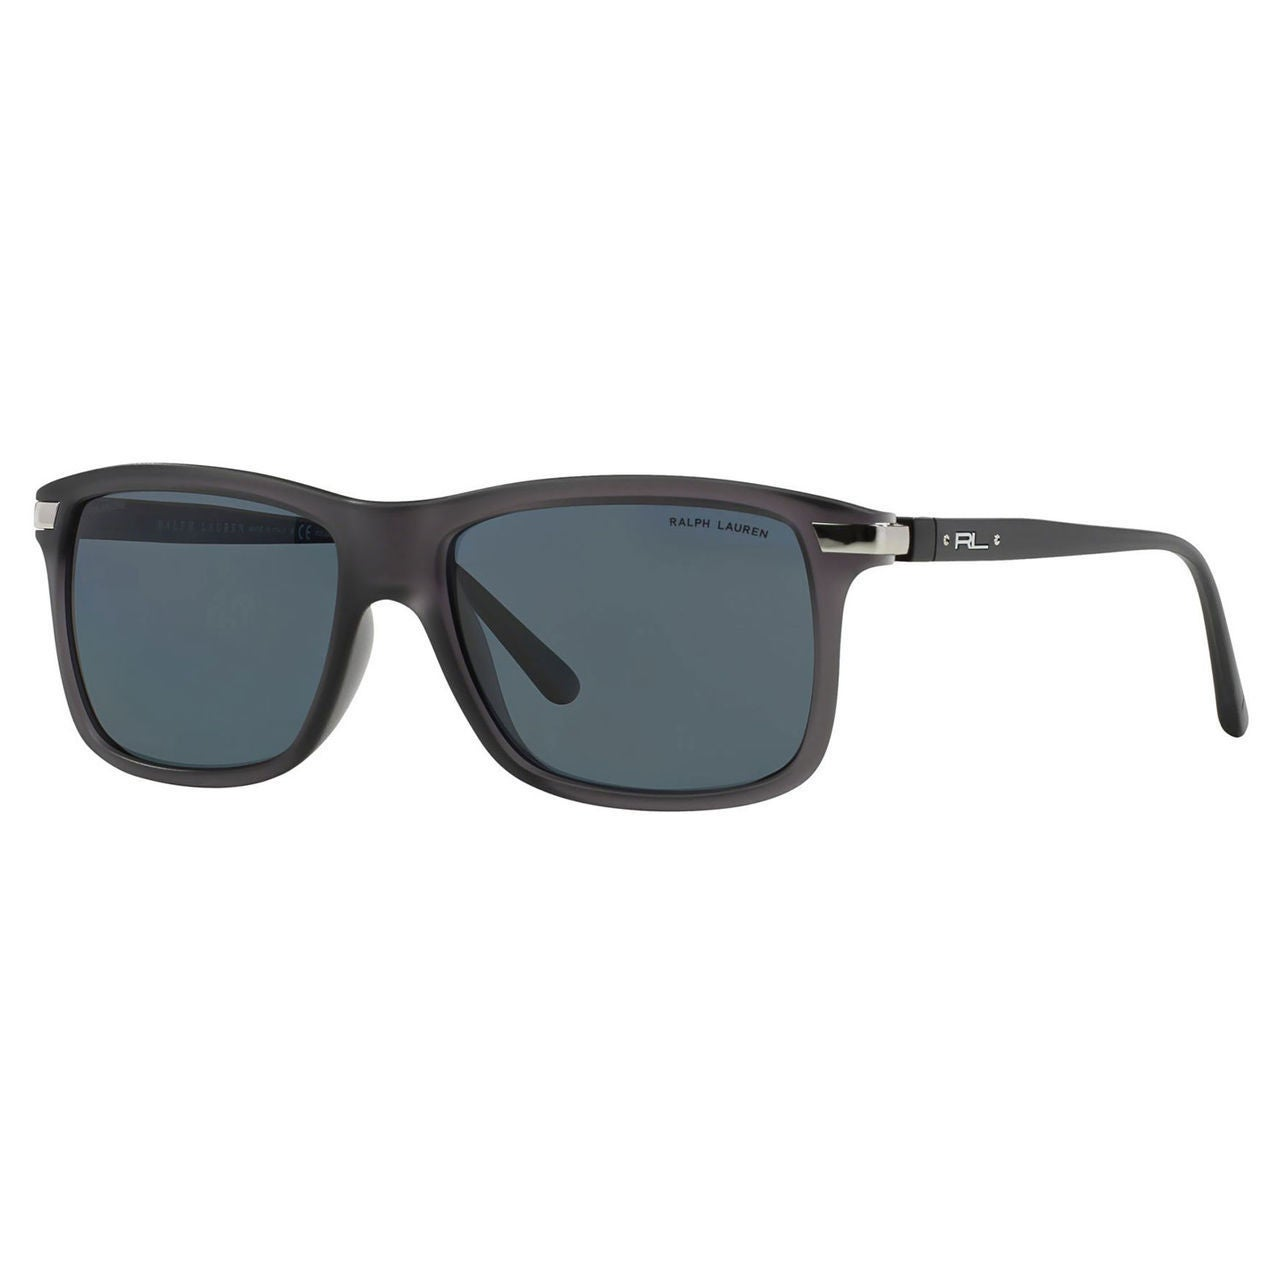 0ec8d875ead Shop Polo Ralph Lauren Men s PH4084 Plastic Rectangle Polarized Sunglasses  - Grey - Large - Free Shipping Today - Overstock.com - 10442231